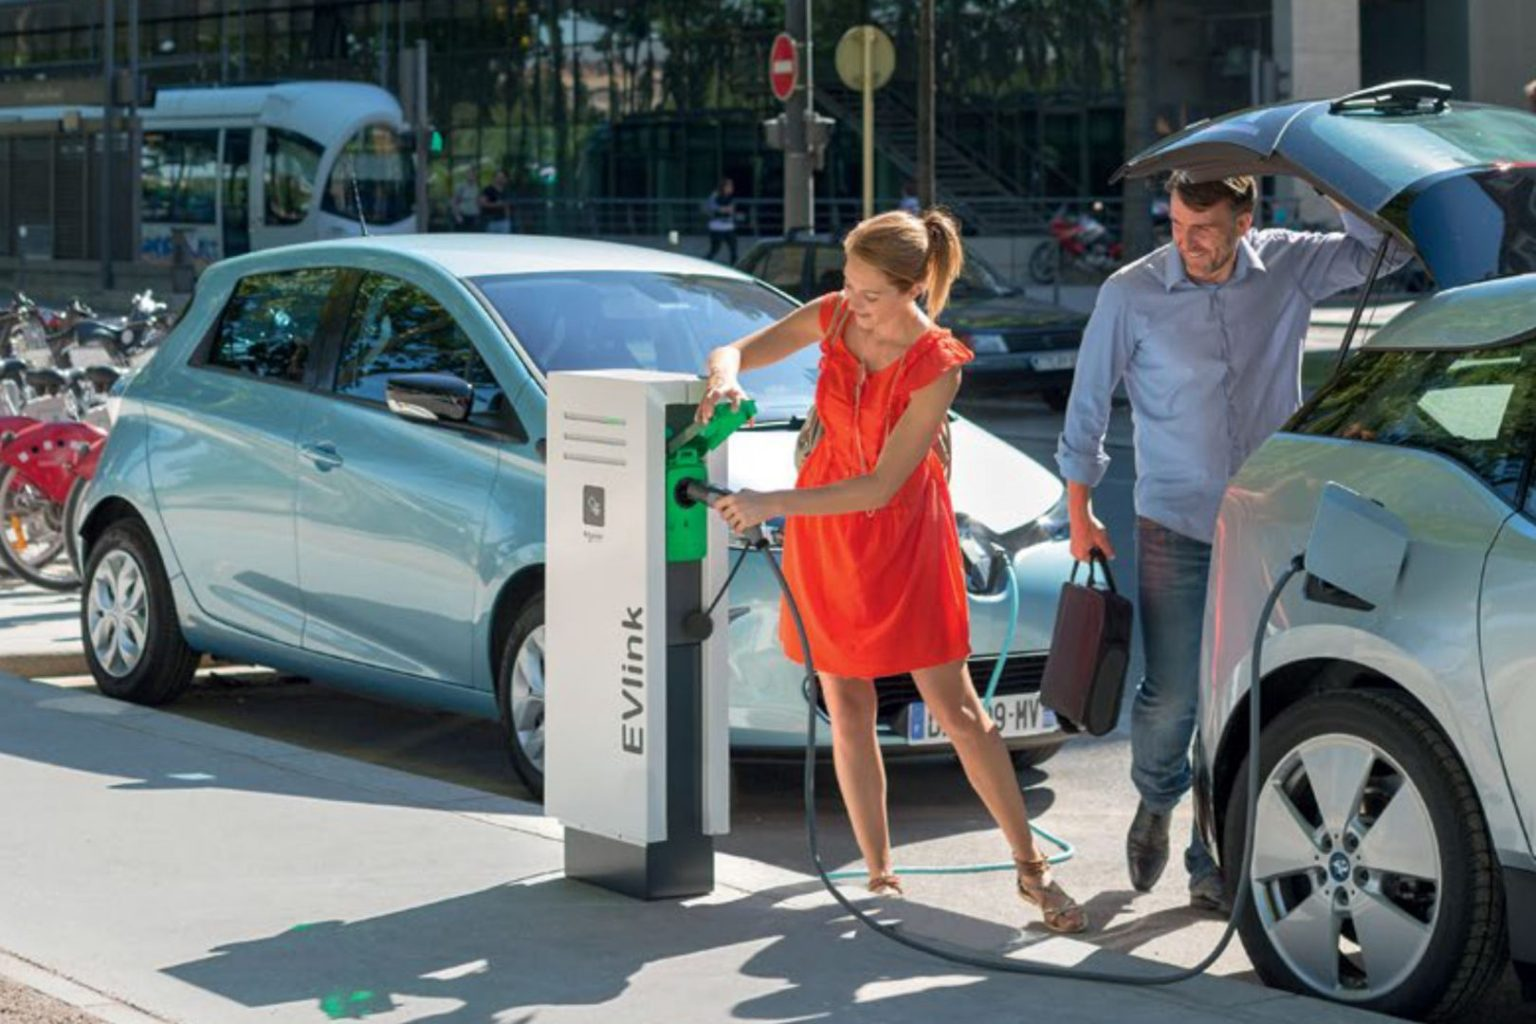 microngroup-schneider-EVlink-vehicle-charger-on street